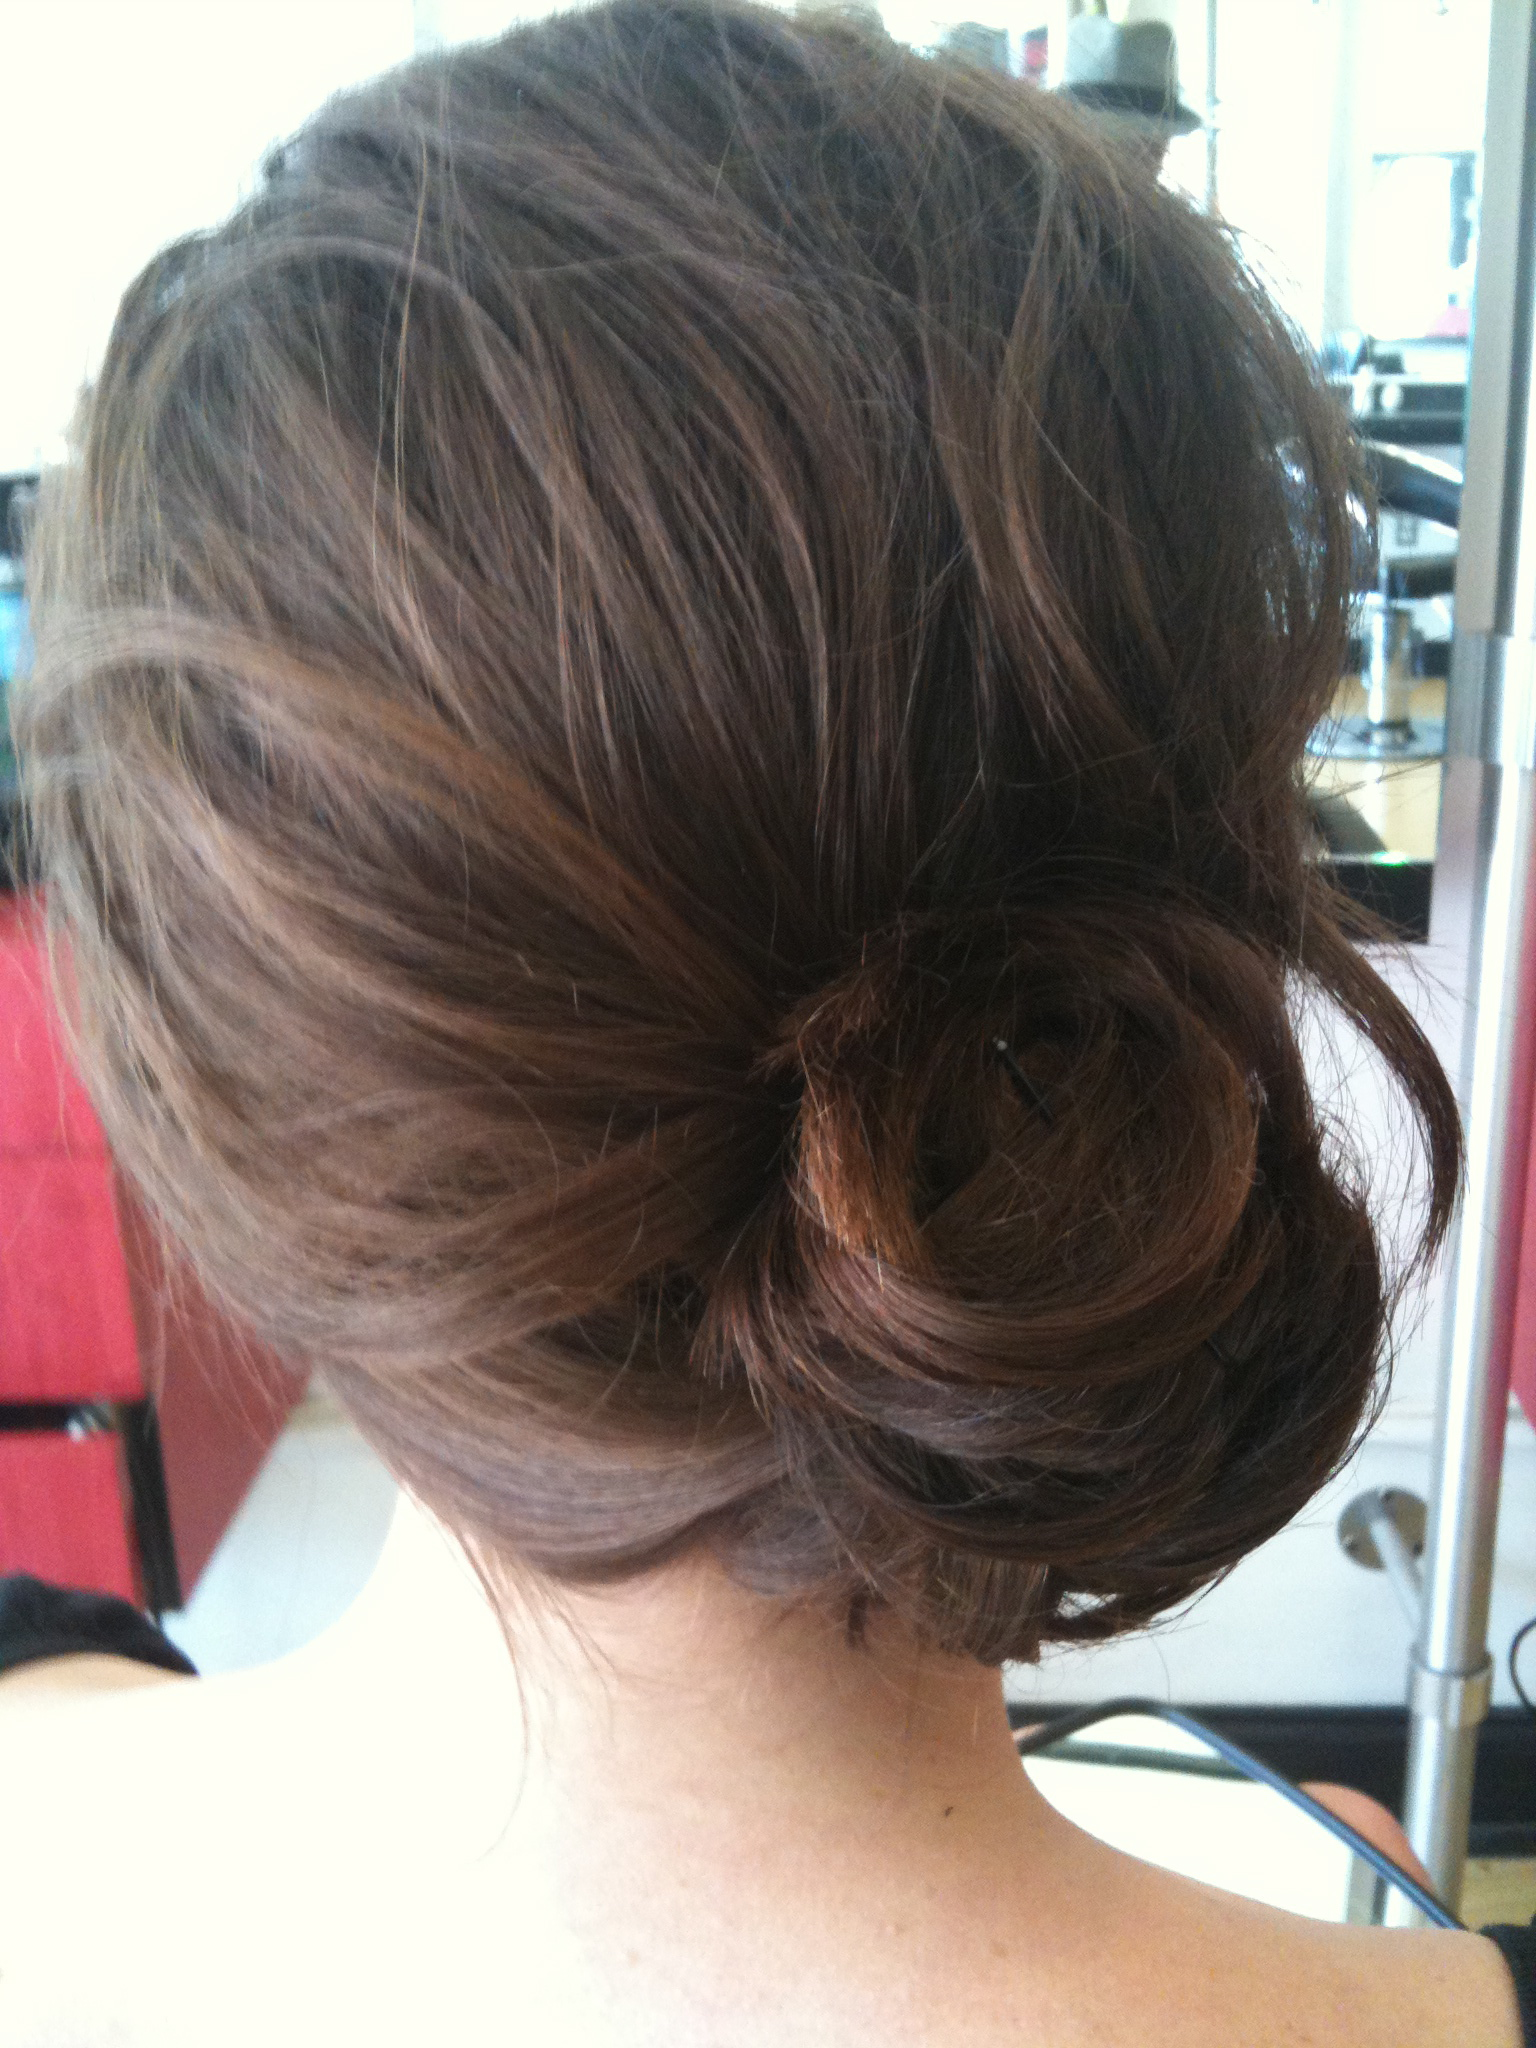 wedding hairstyles - The Bohemian Bride